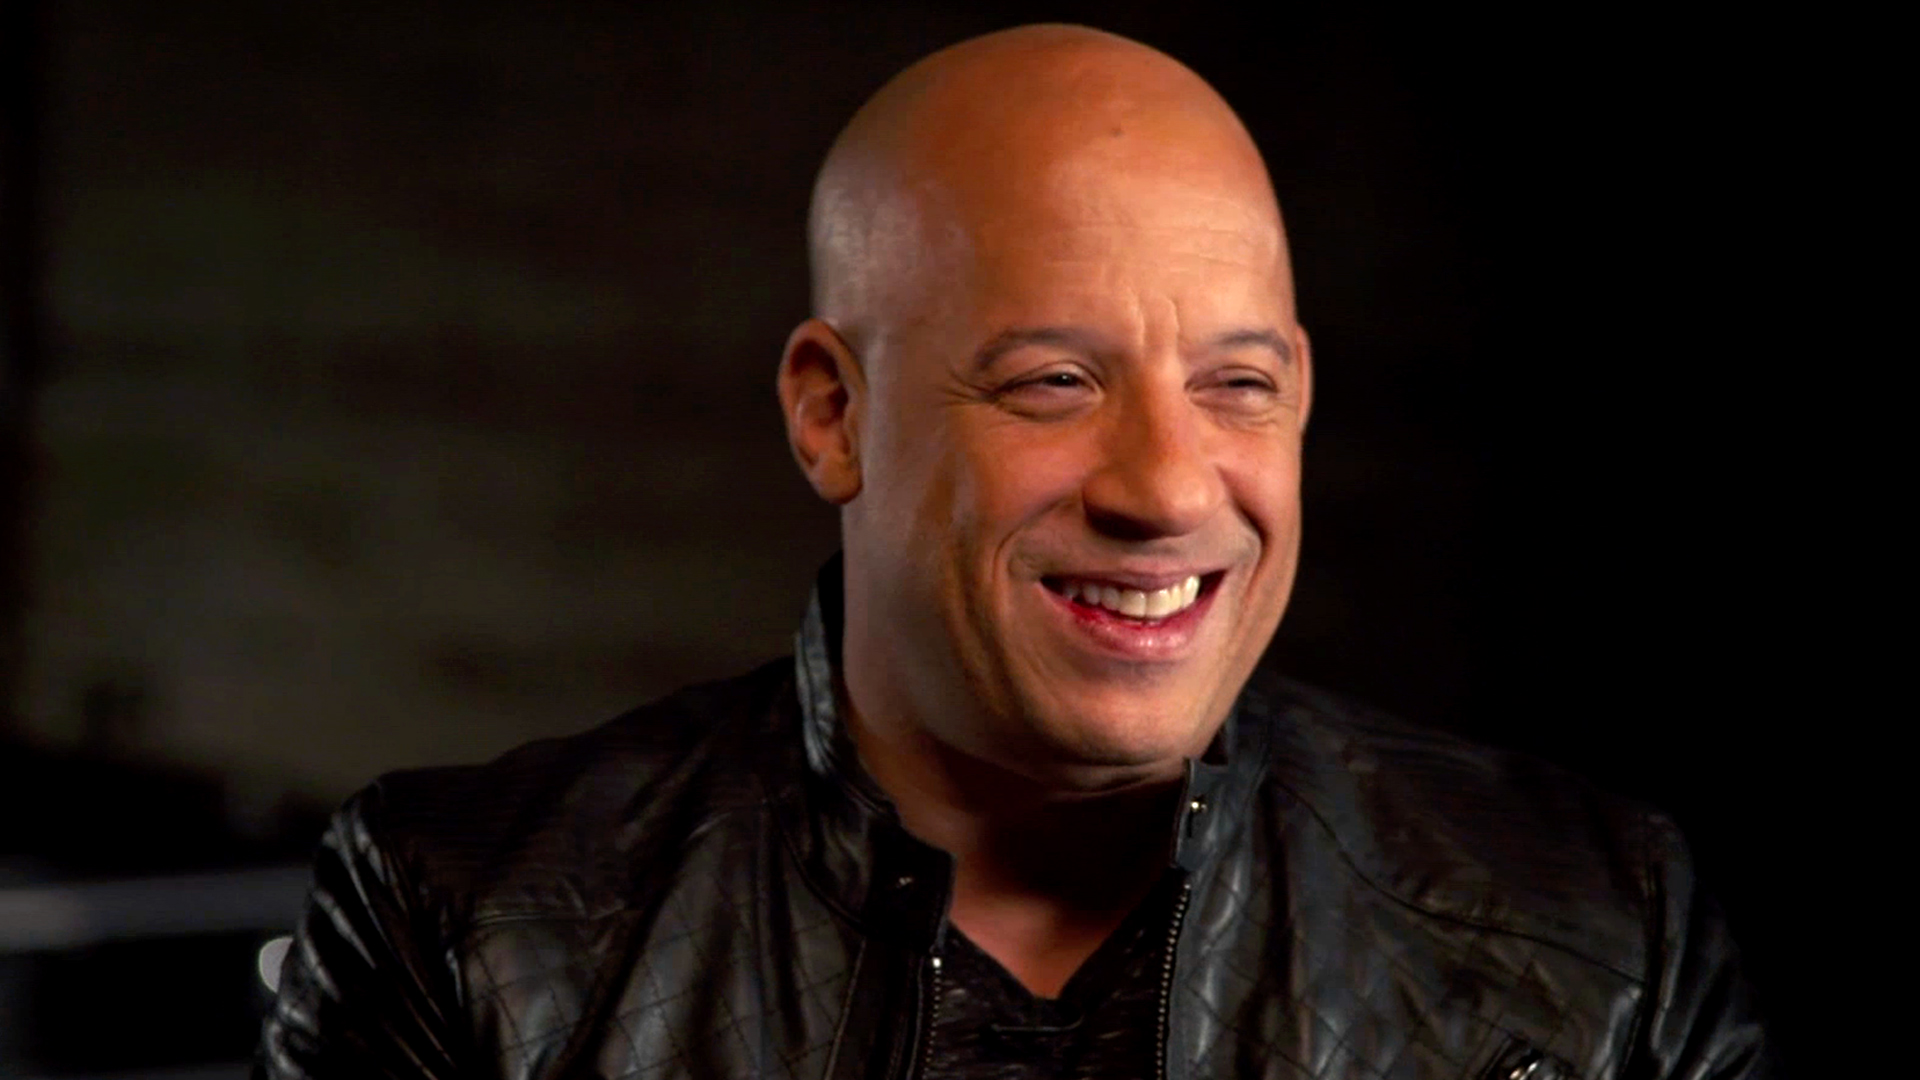 My First Time with Vin Diesel